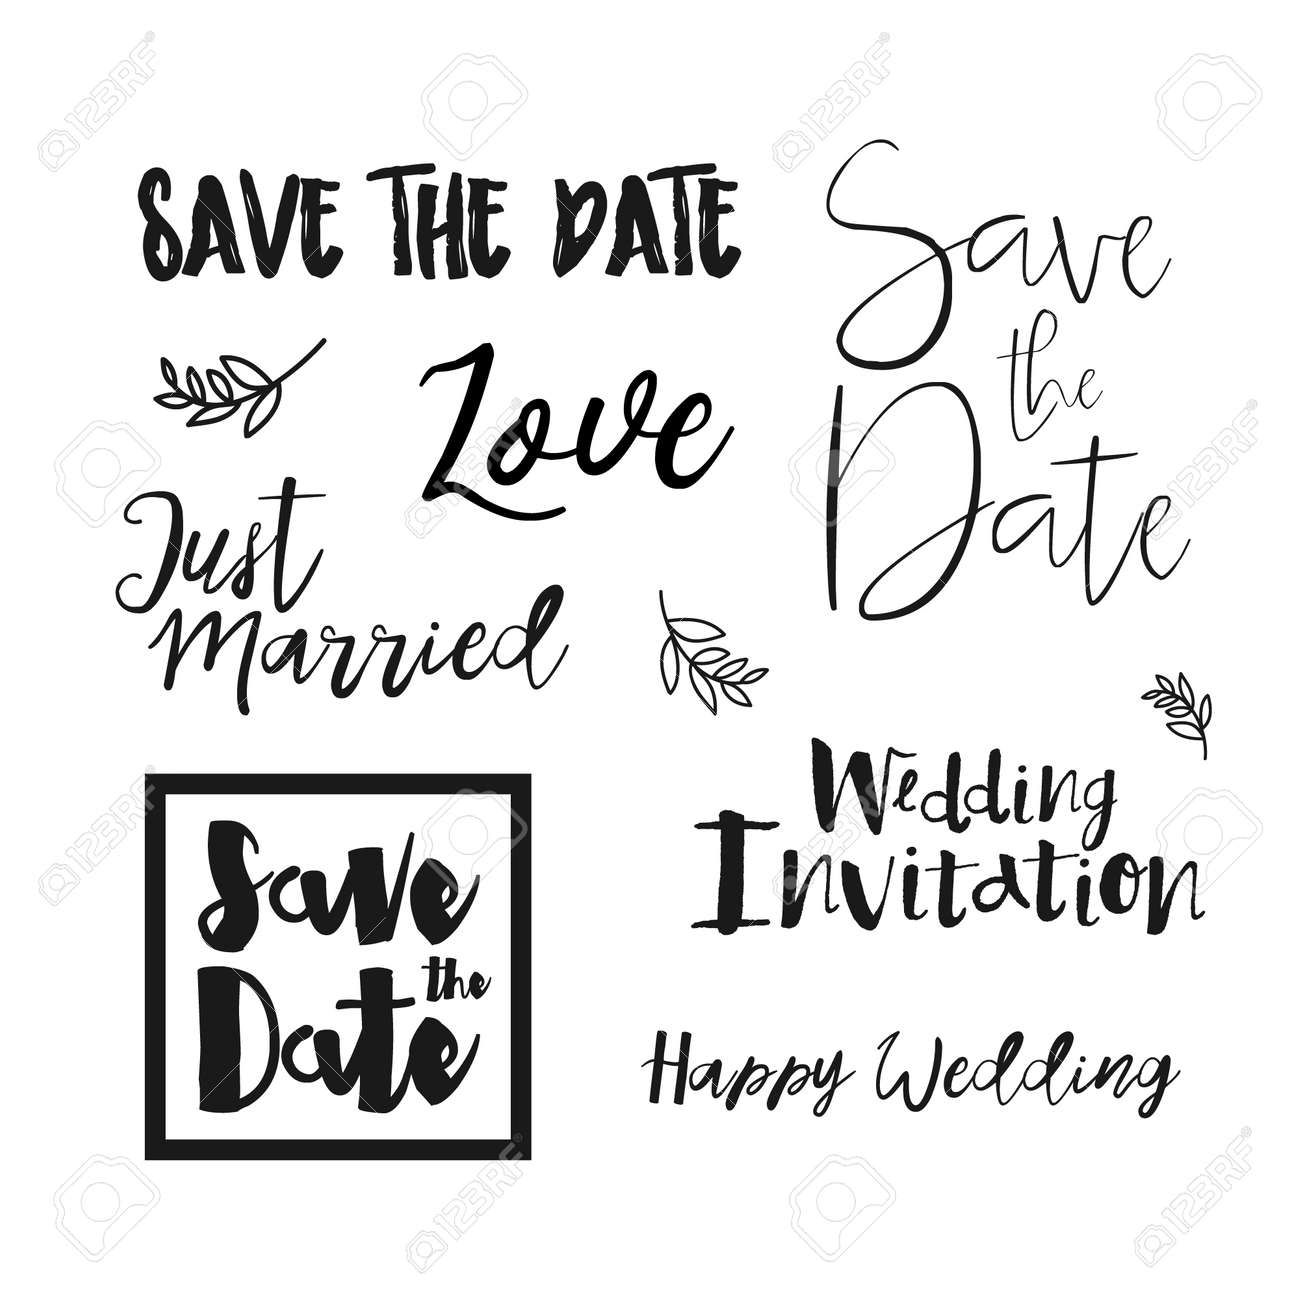 Ahorre Las De Invitacion De La Boda Save The Date Letras Guardar